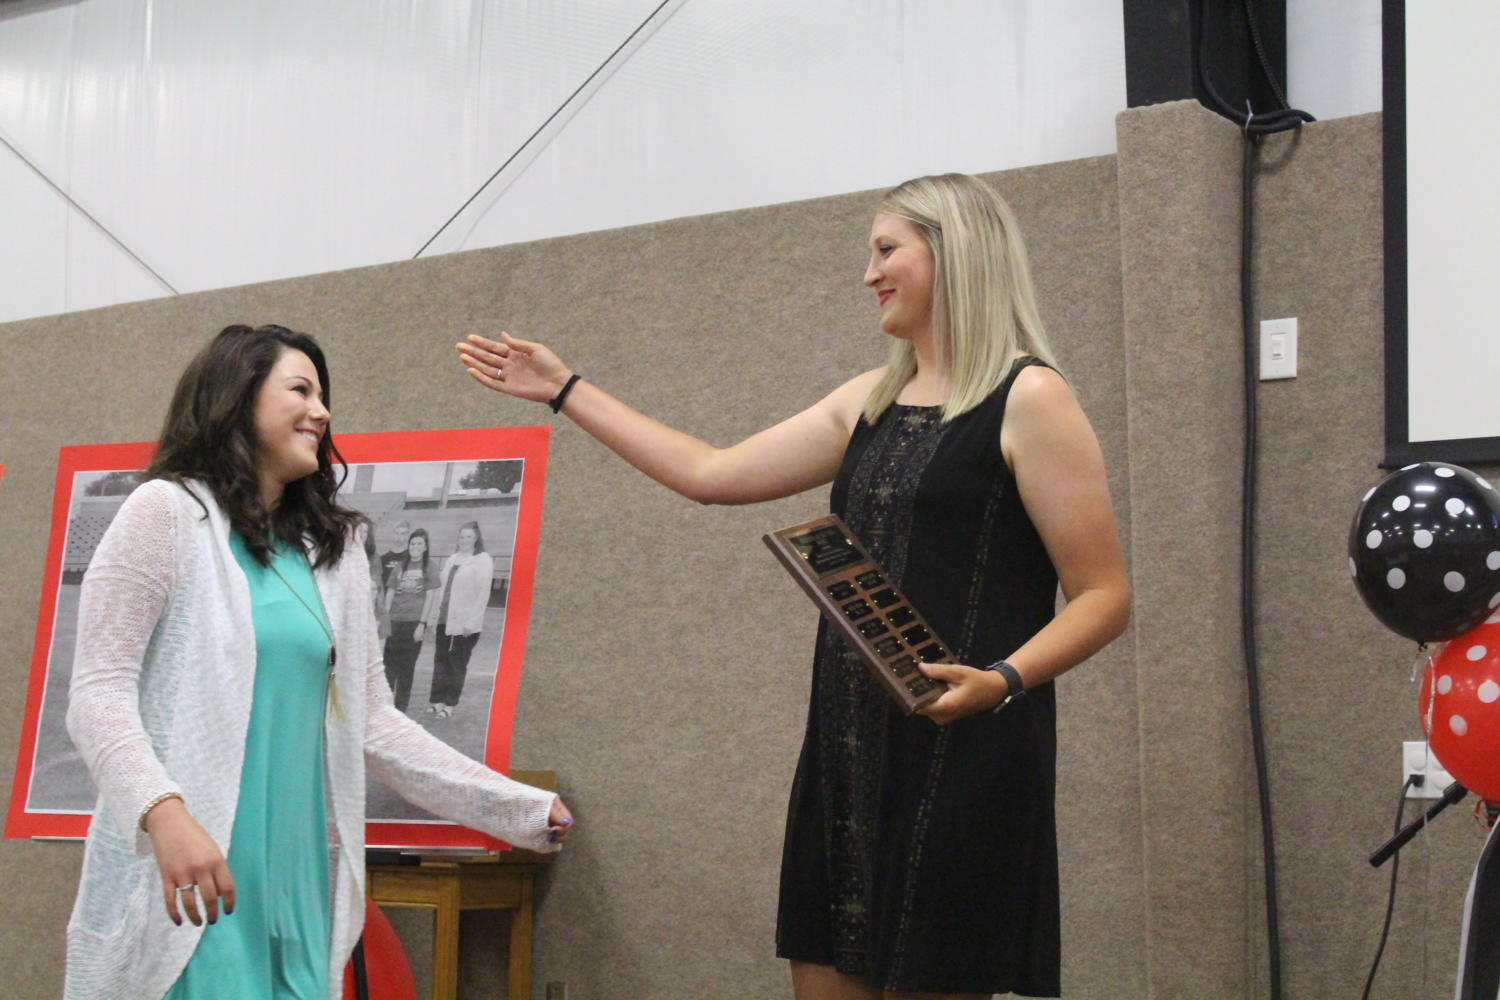 Senior+Caroline+Britten+receives+the+%22Tigerette+of+the+Year%22+award+from+Coach+Nicole+Black+on+Tuesday%2C+May+16+at+the+annual+athletic+banquet.+Britten+has+participated+in+basketball%2C+tennis%2C+track%2C+cross+country%2C+National+Honor+Society%2C+student+council%2C+Academic+UIL%2C+and+One+Act+Play+all+through+high+school.+%22She+is+a+big+role+model+to+not+only+me%2C+but+lots+of+younger+girls%2C%22+sophomore+K%27leigh+Keesee+said.